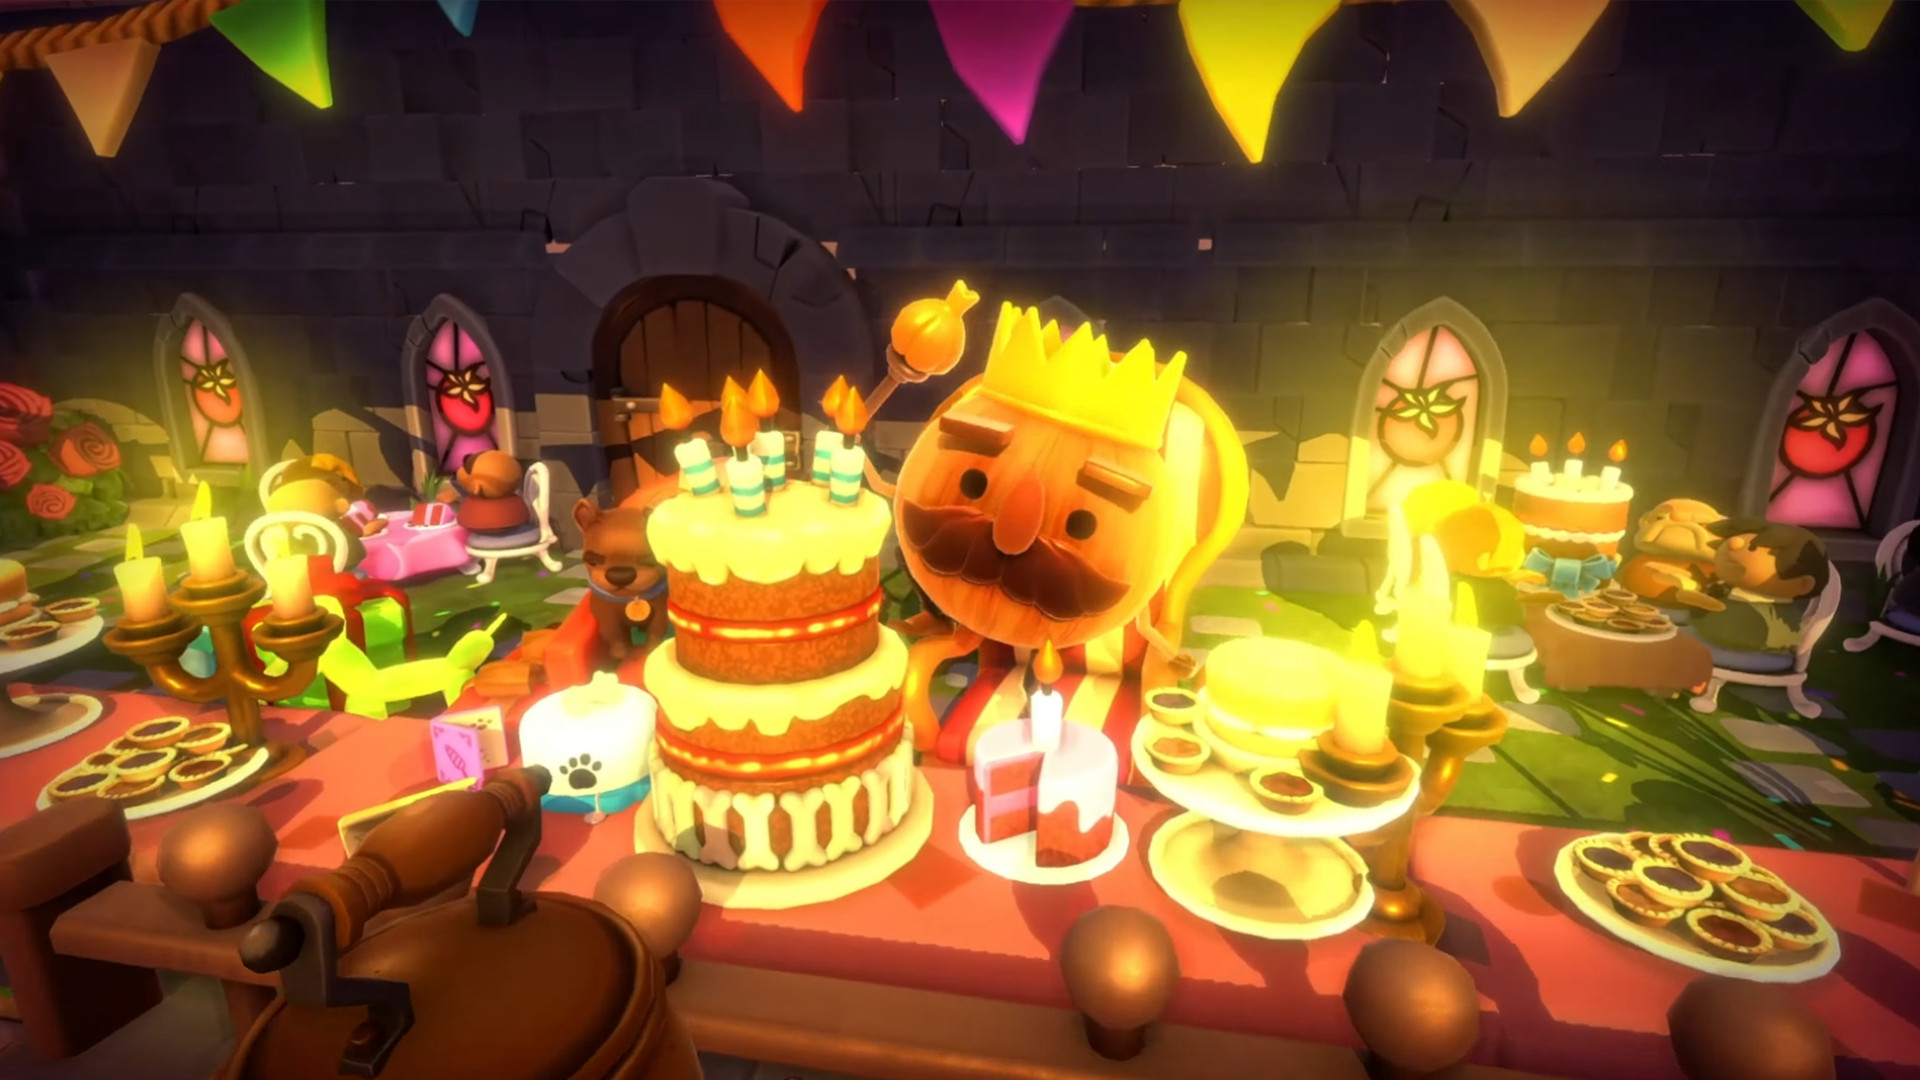 Overcooked gets a free birthday update, but only for the pricier new version